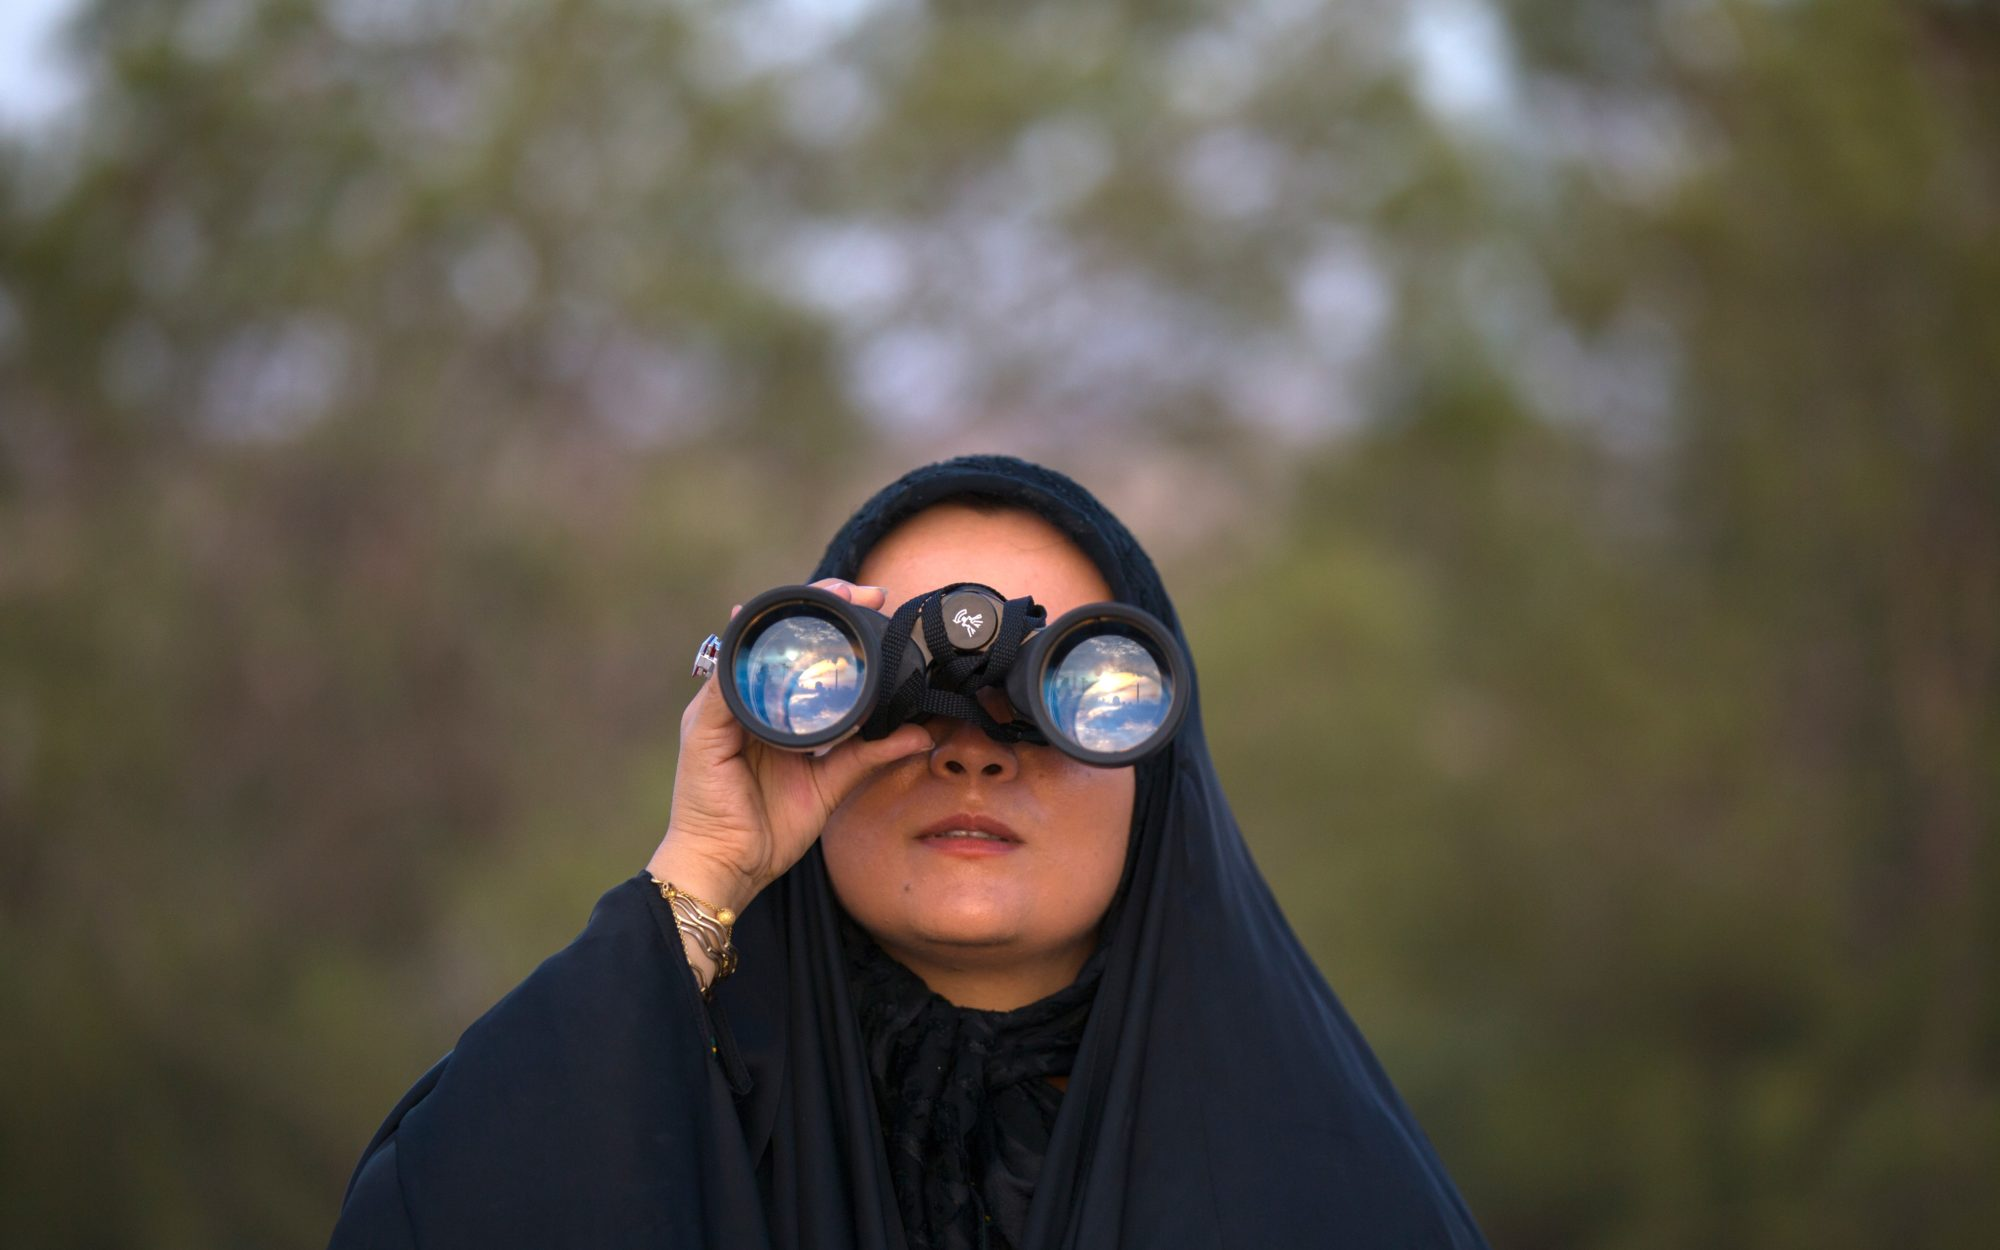 International womens day: Hijabi woman with binoculars